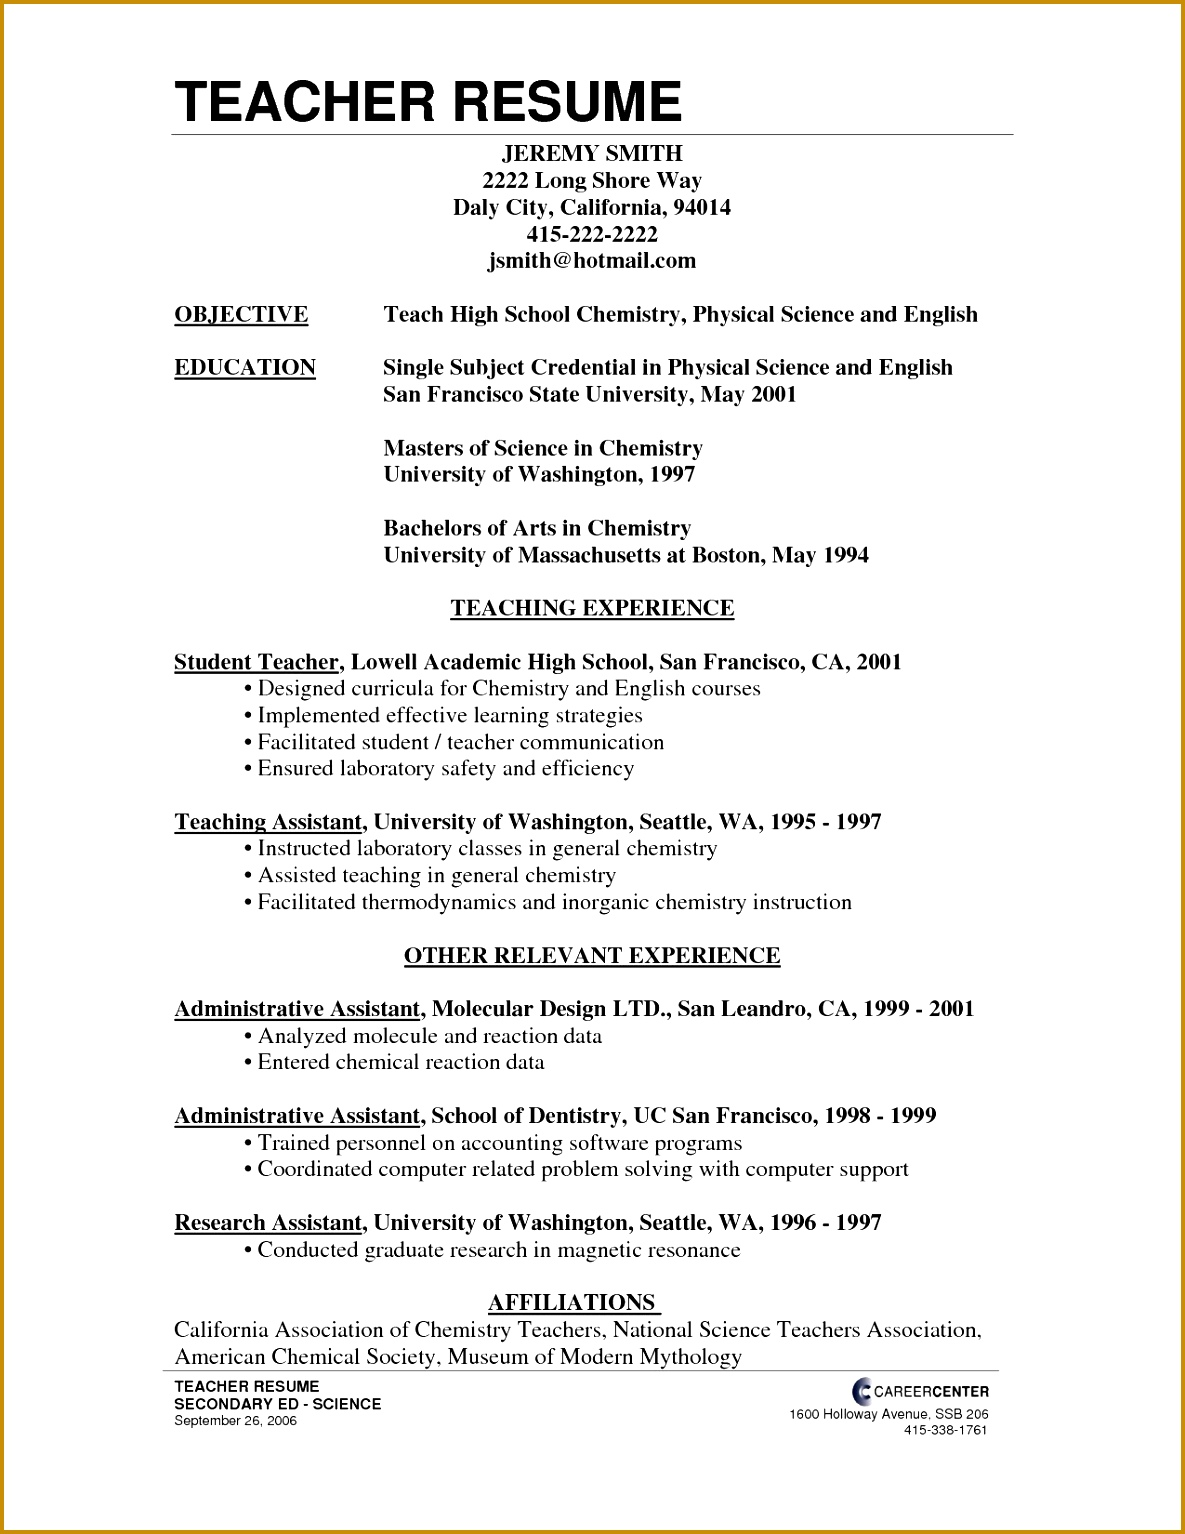 Resume Cover Letter Example New Free Cover Letter Templates Examples Best Od Specialist Sample 15341185